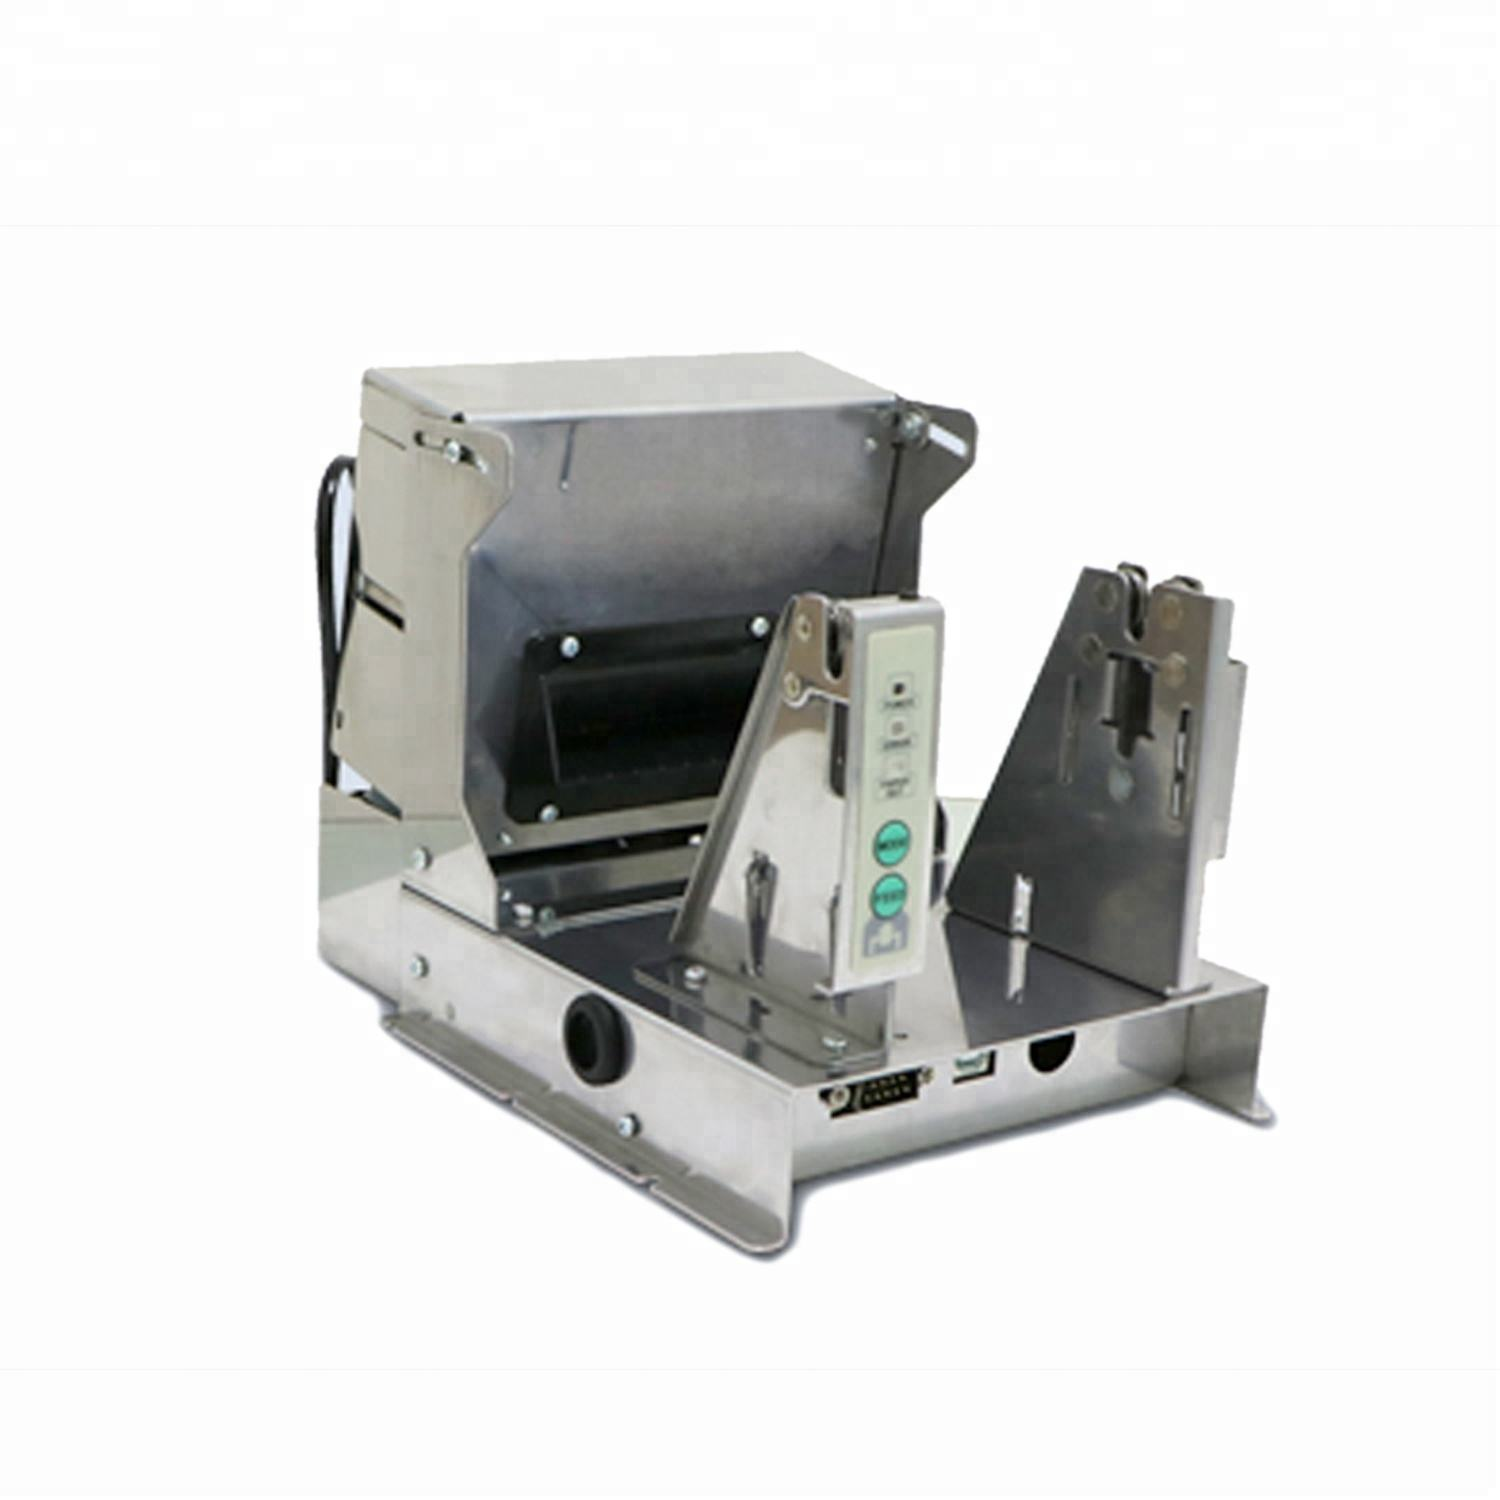 Sebagian Cutter Loading Kertas 76 Mm Dot Matrix Kios Printer HCC-EU761